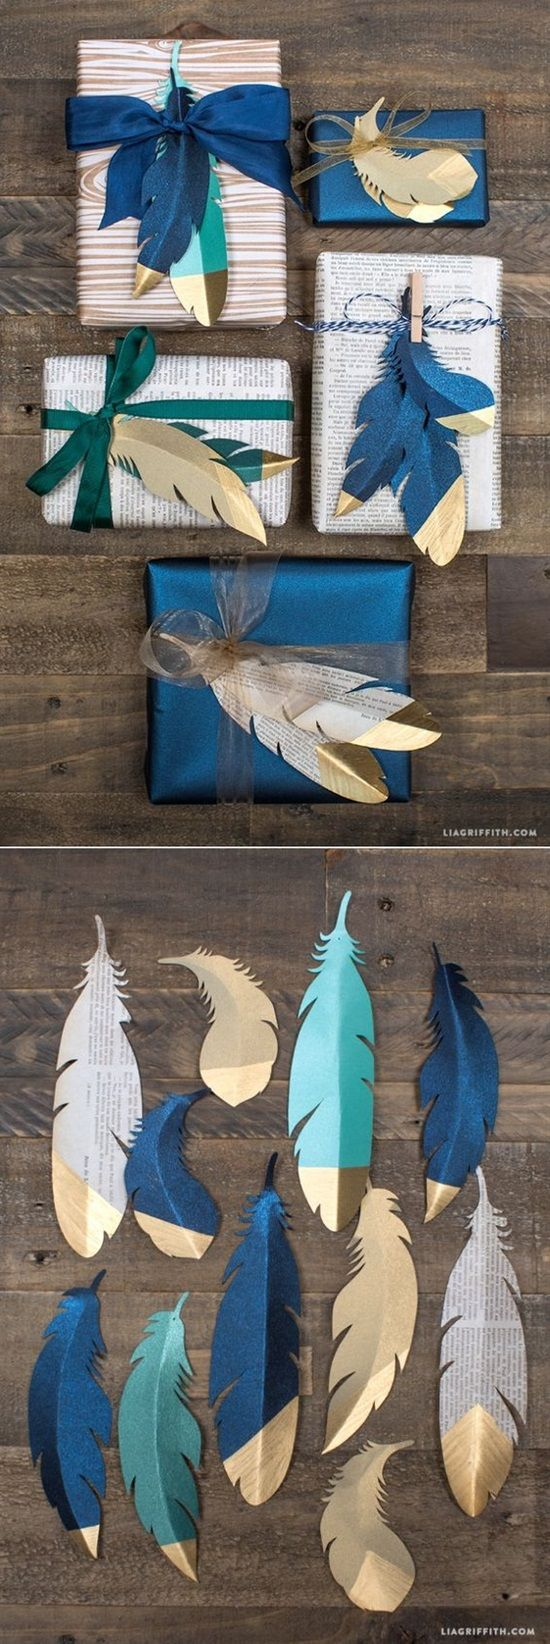 17 best images about paper scrapbooking crafts 22 most beautiful paper crafts anyone can try